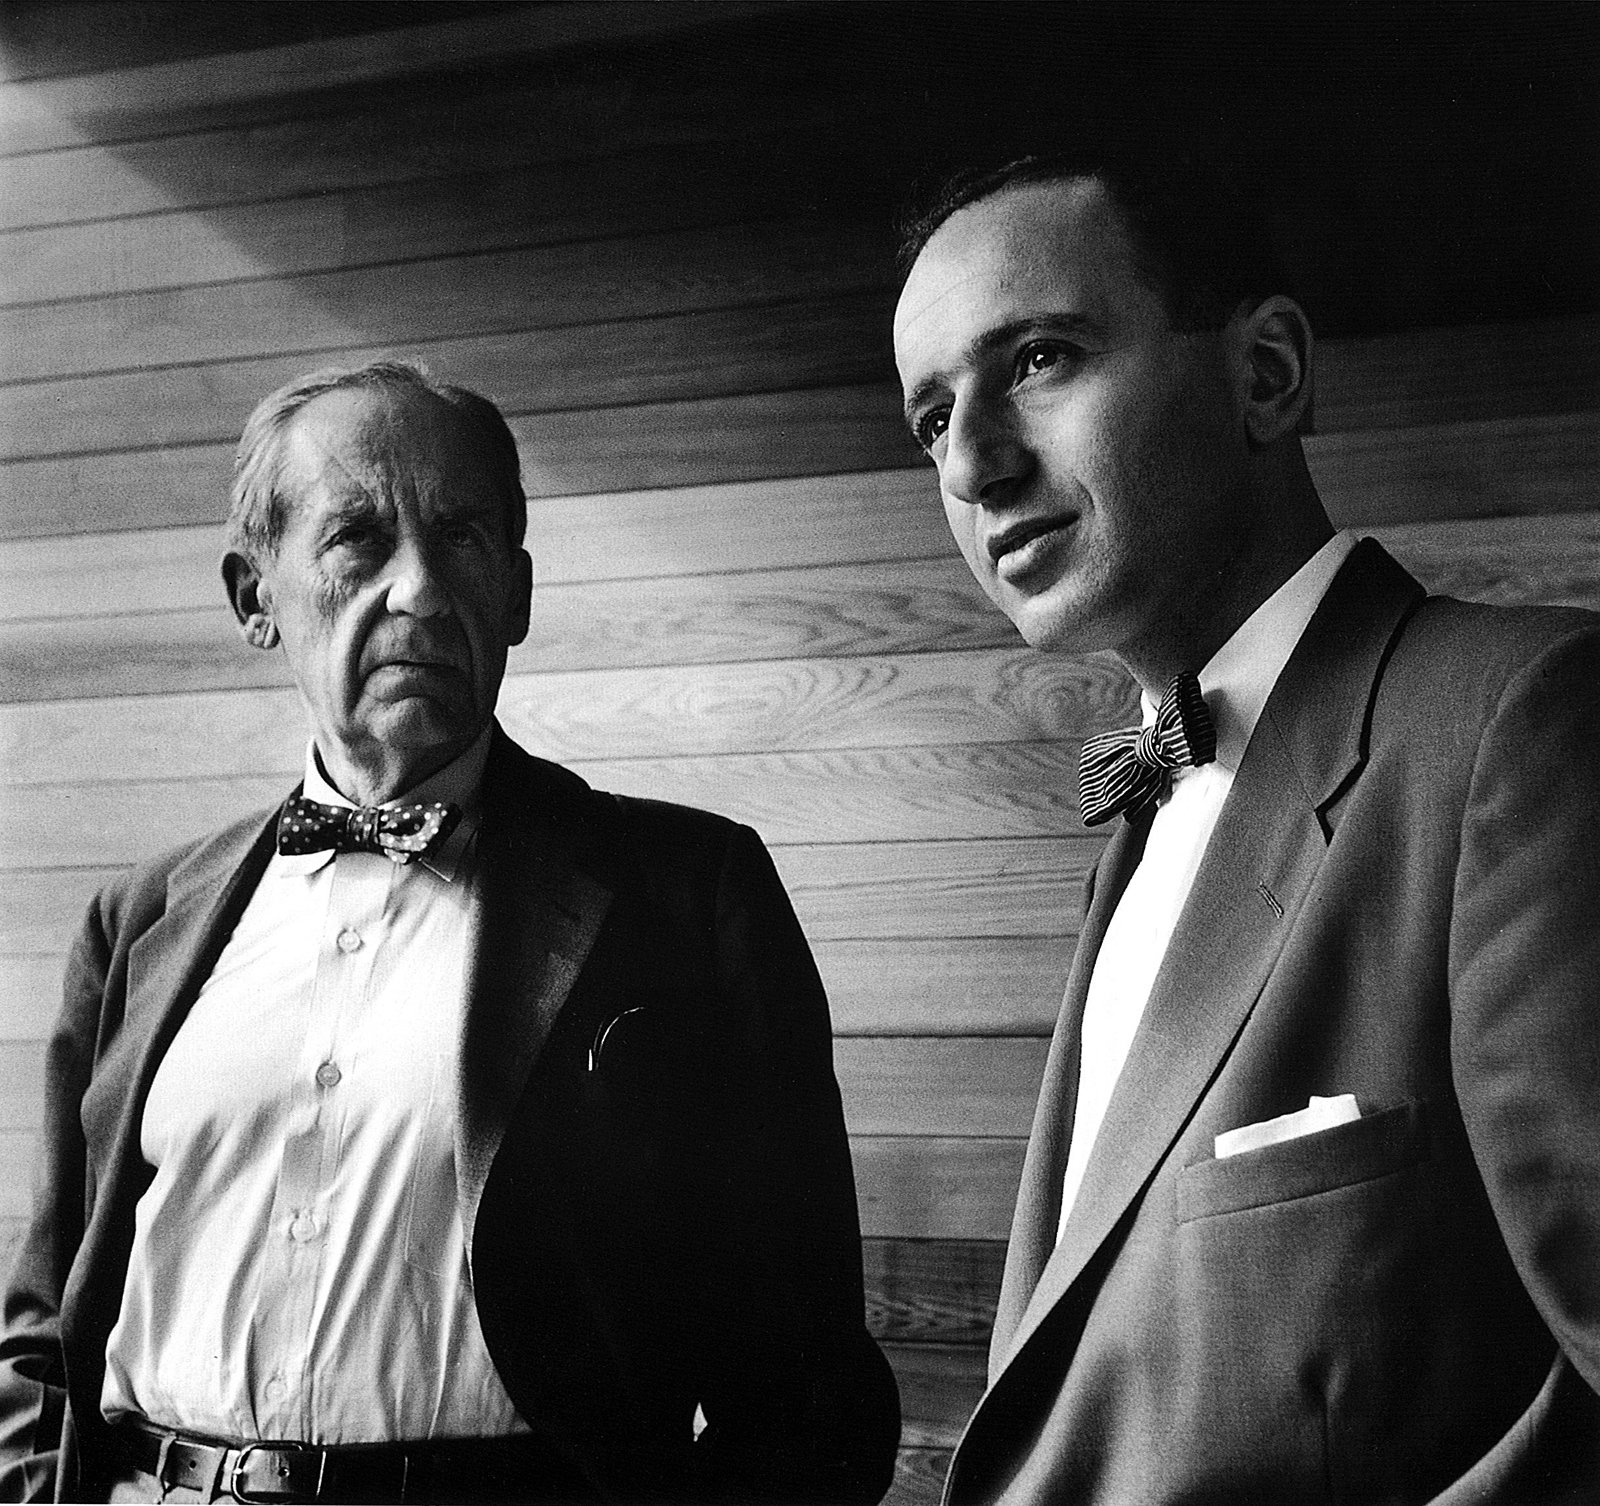 With Walter Gropius in Julian Rose House, Sydney, 1954. Photo © Max Dupain  Photo 2 of 12 in Harry Seidler: Architecture, Art, and Collaborative Design